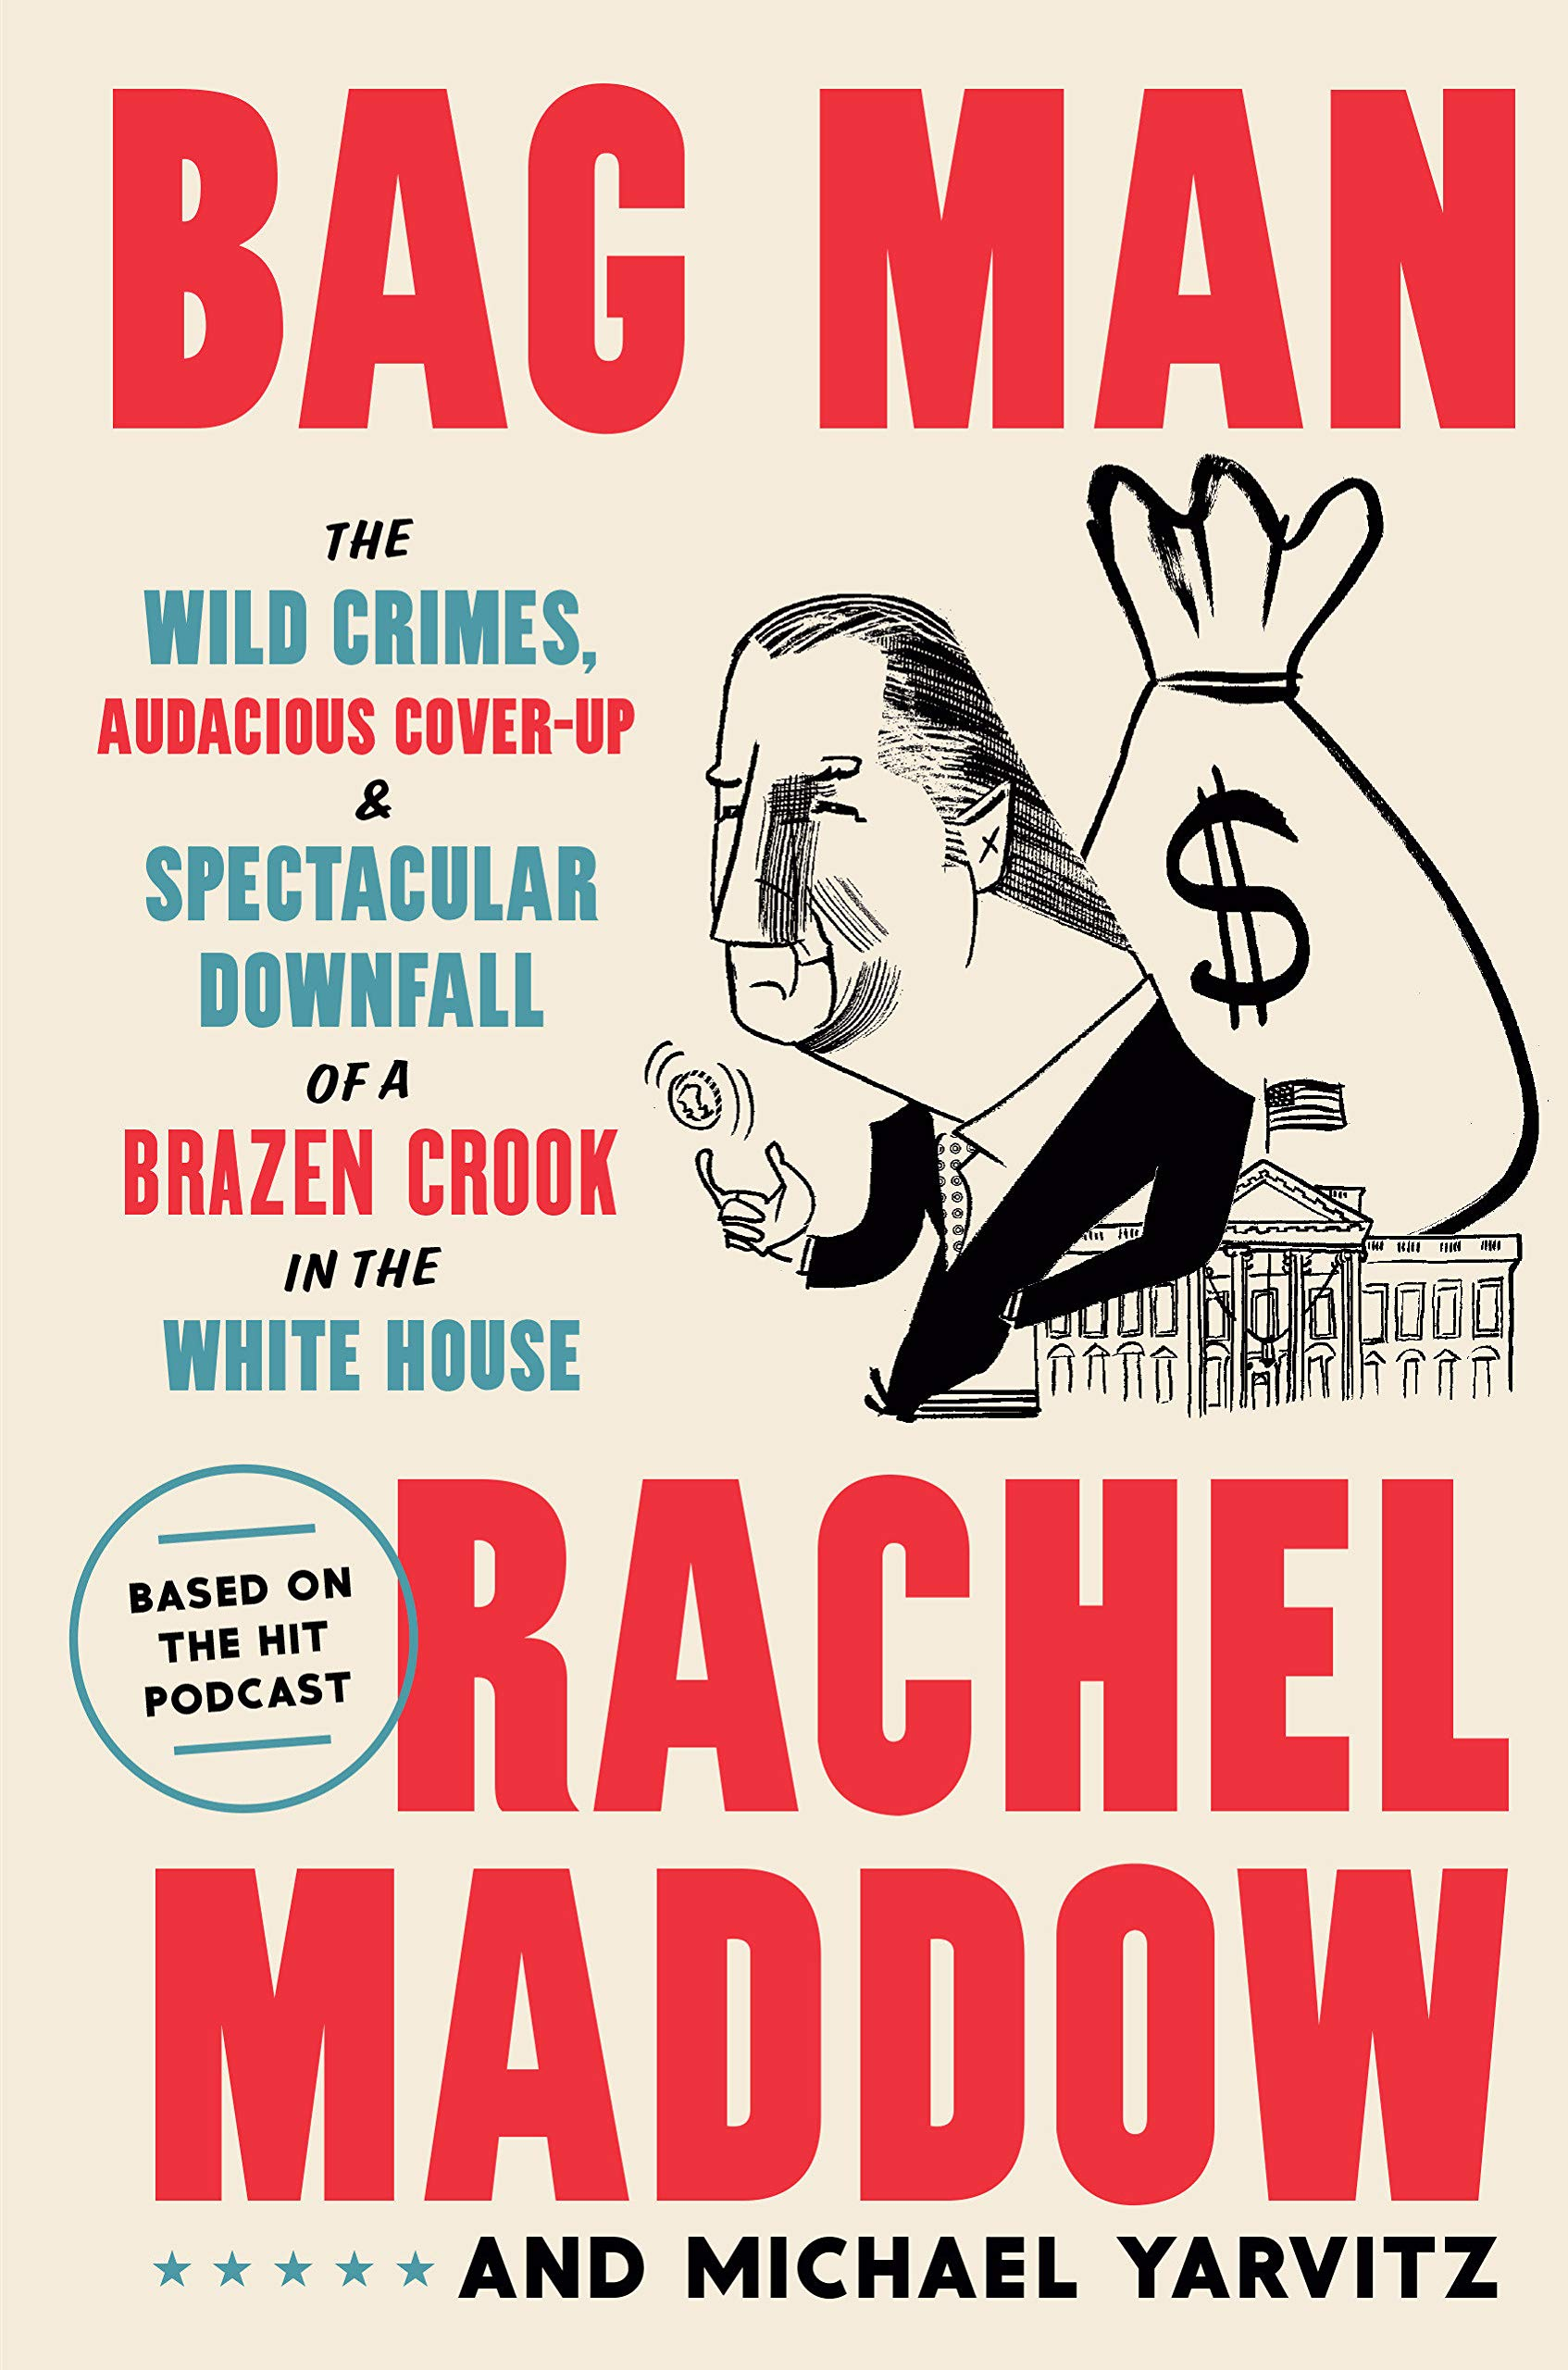 Amazon.com: Bag Man: The Wild Crimes, Audacious Cover-up, and Spectacular Downfall of a Brazen Crook in the White House: 9780593136683: Maddow, Rachel, Yarvitz, Michael: Books